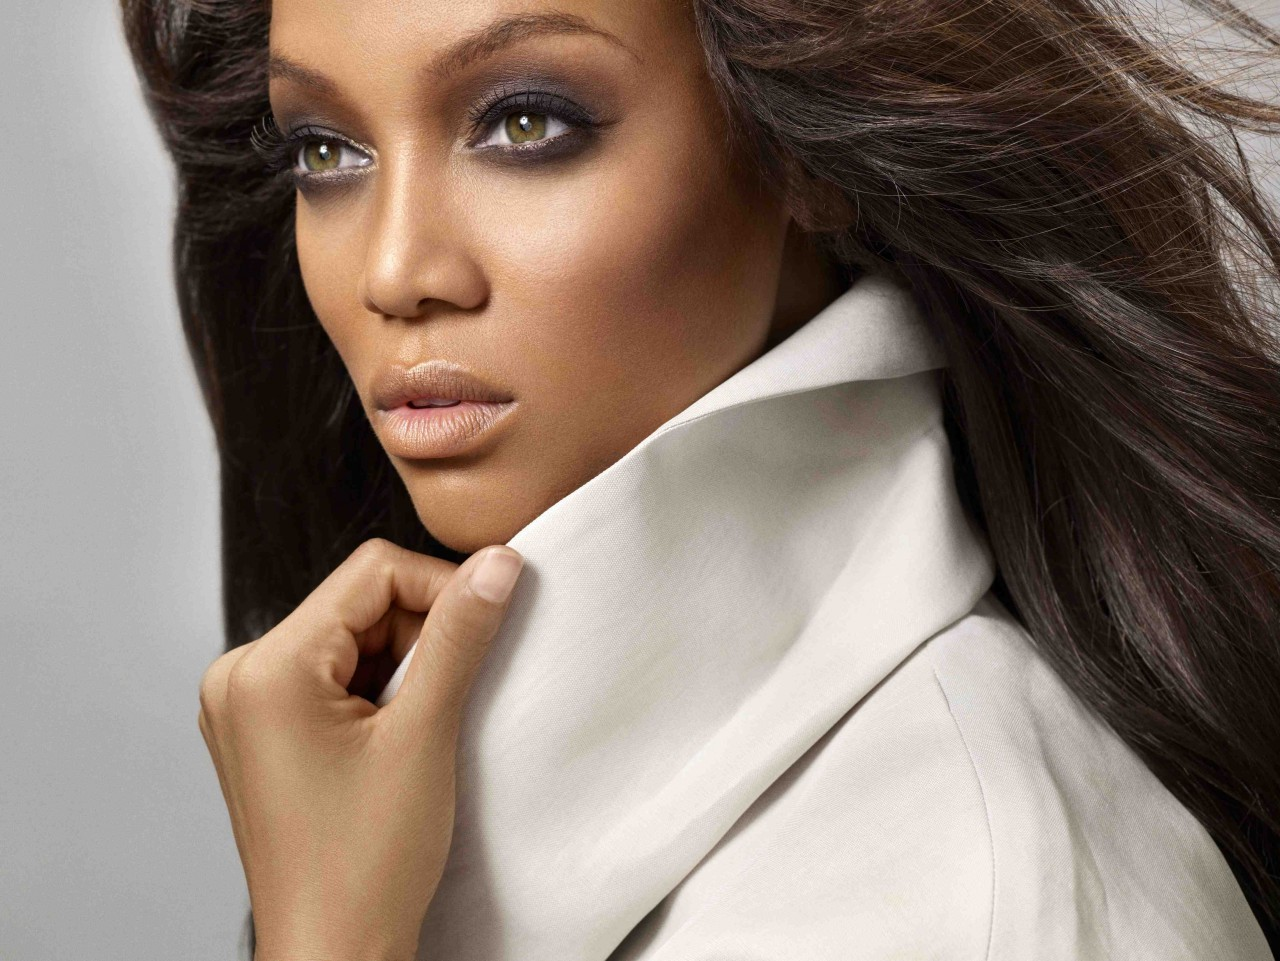 tyra banks reclaims her throne as america's next top model's host